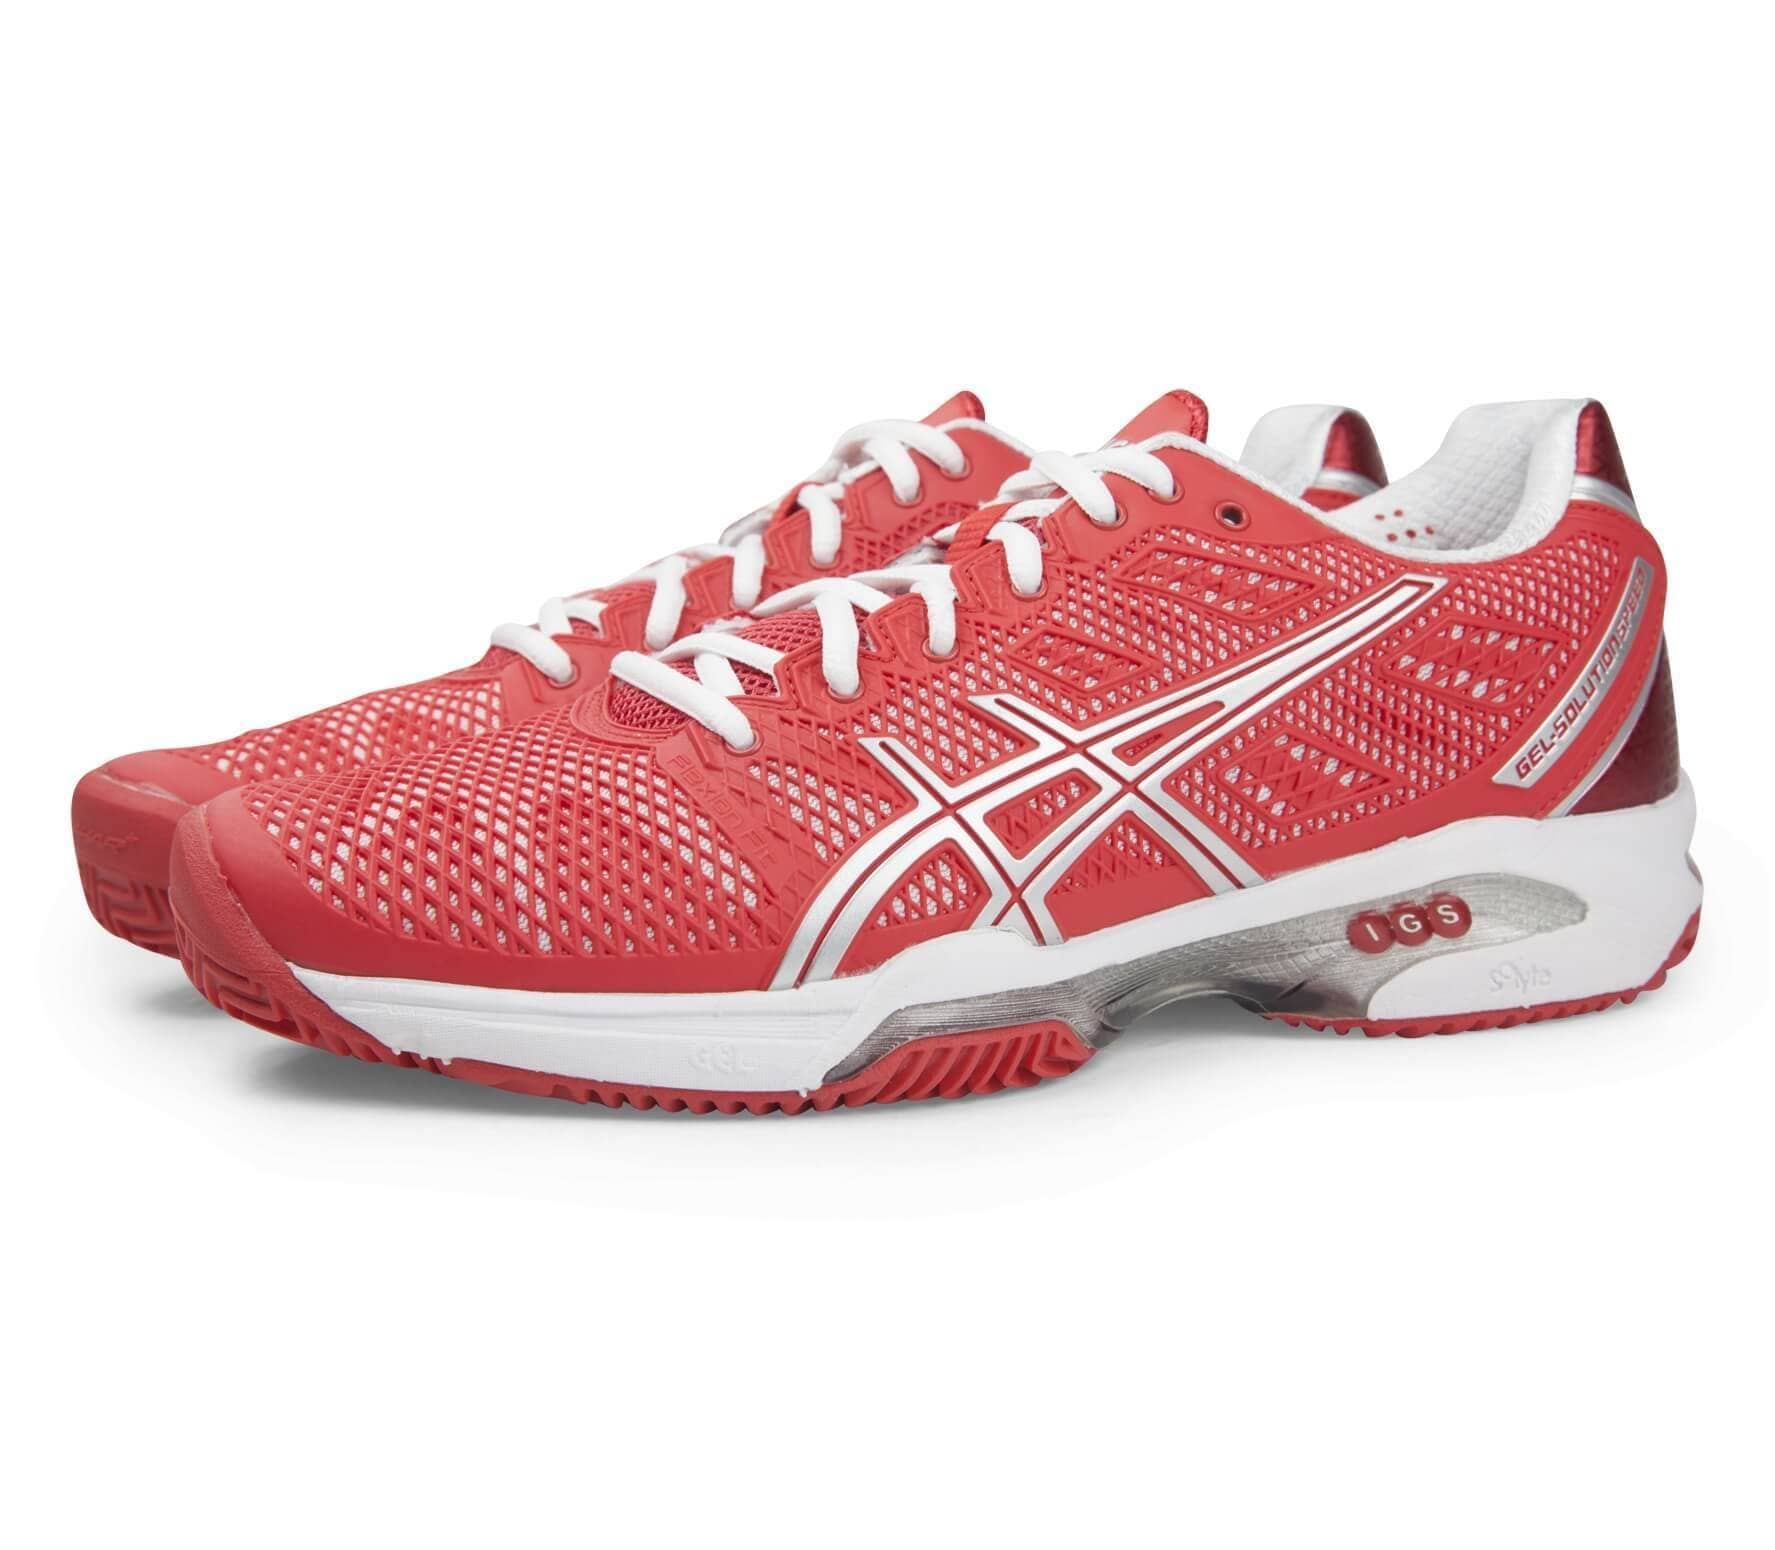 7486a2f8 ASICS - Gel Solution Speed 2 Clay women's tennis shoe (red)